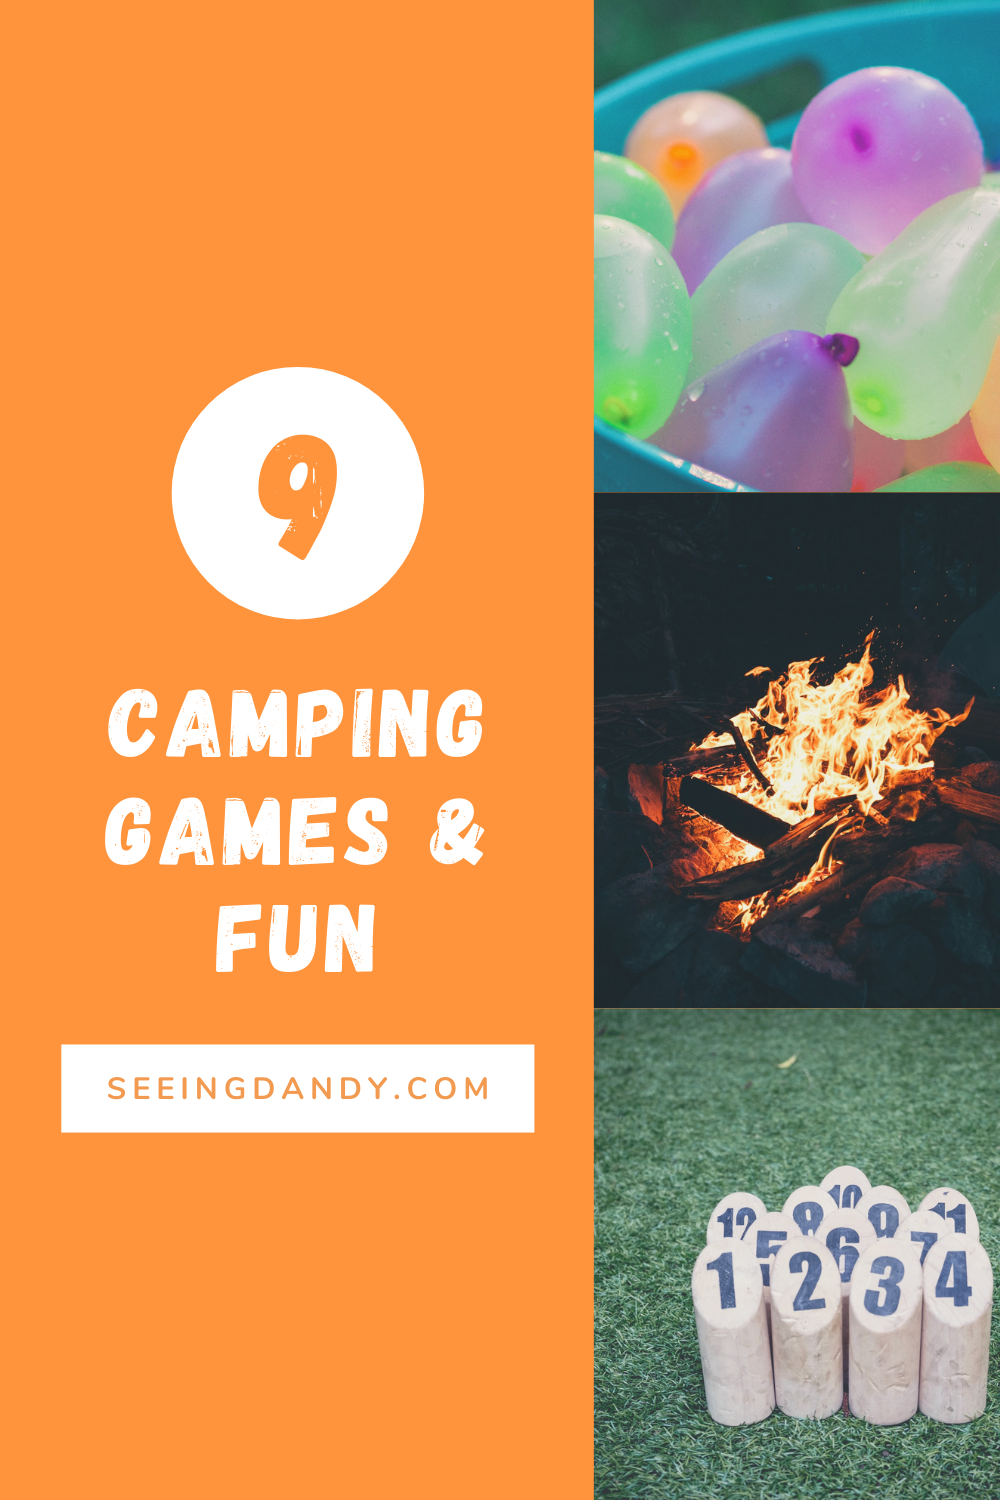 camping games, family fun, outdoor fun, outdoor activities, water balloon toss game, campfire story, lawn games, lawn bowling